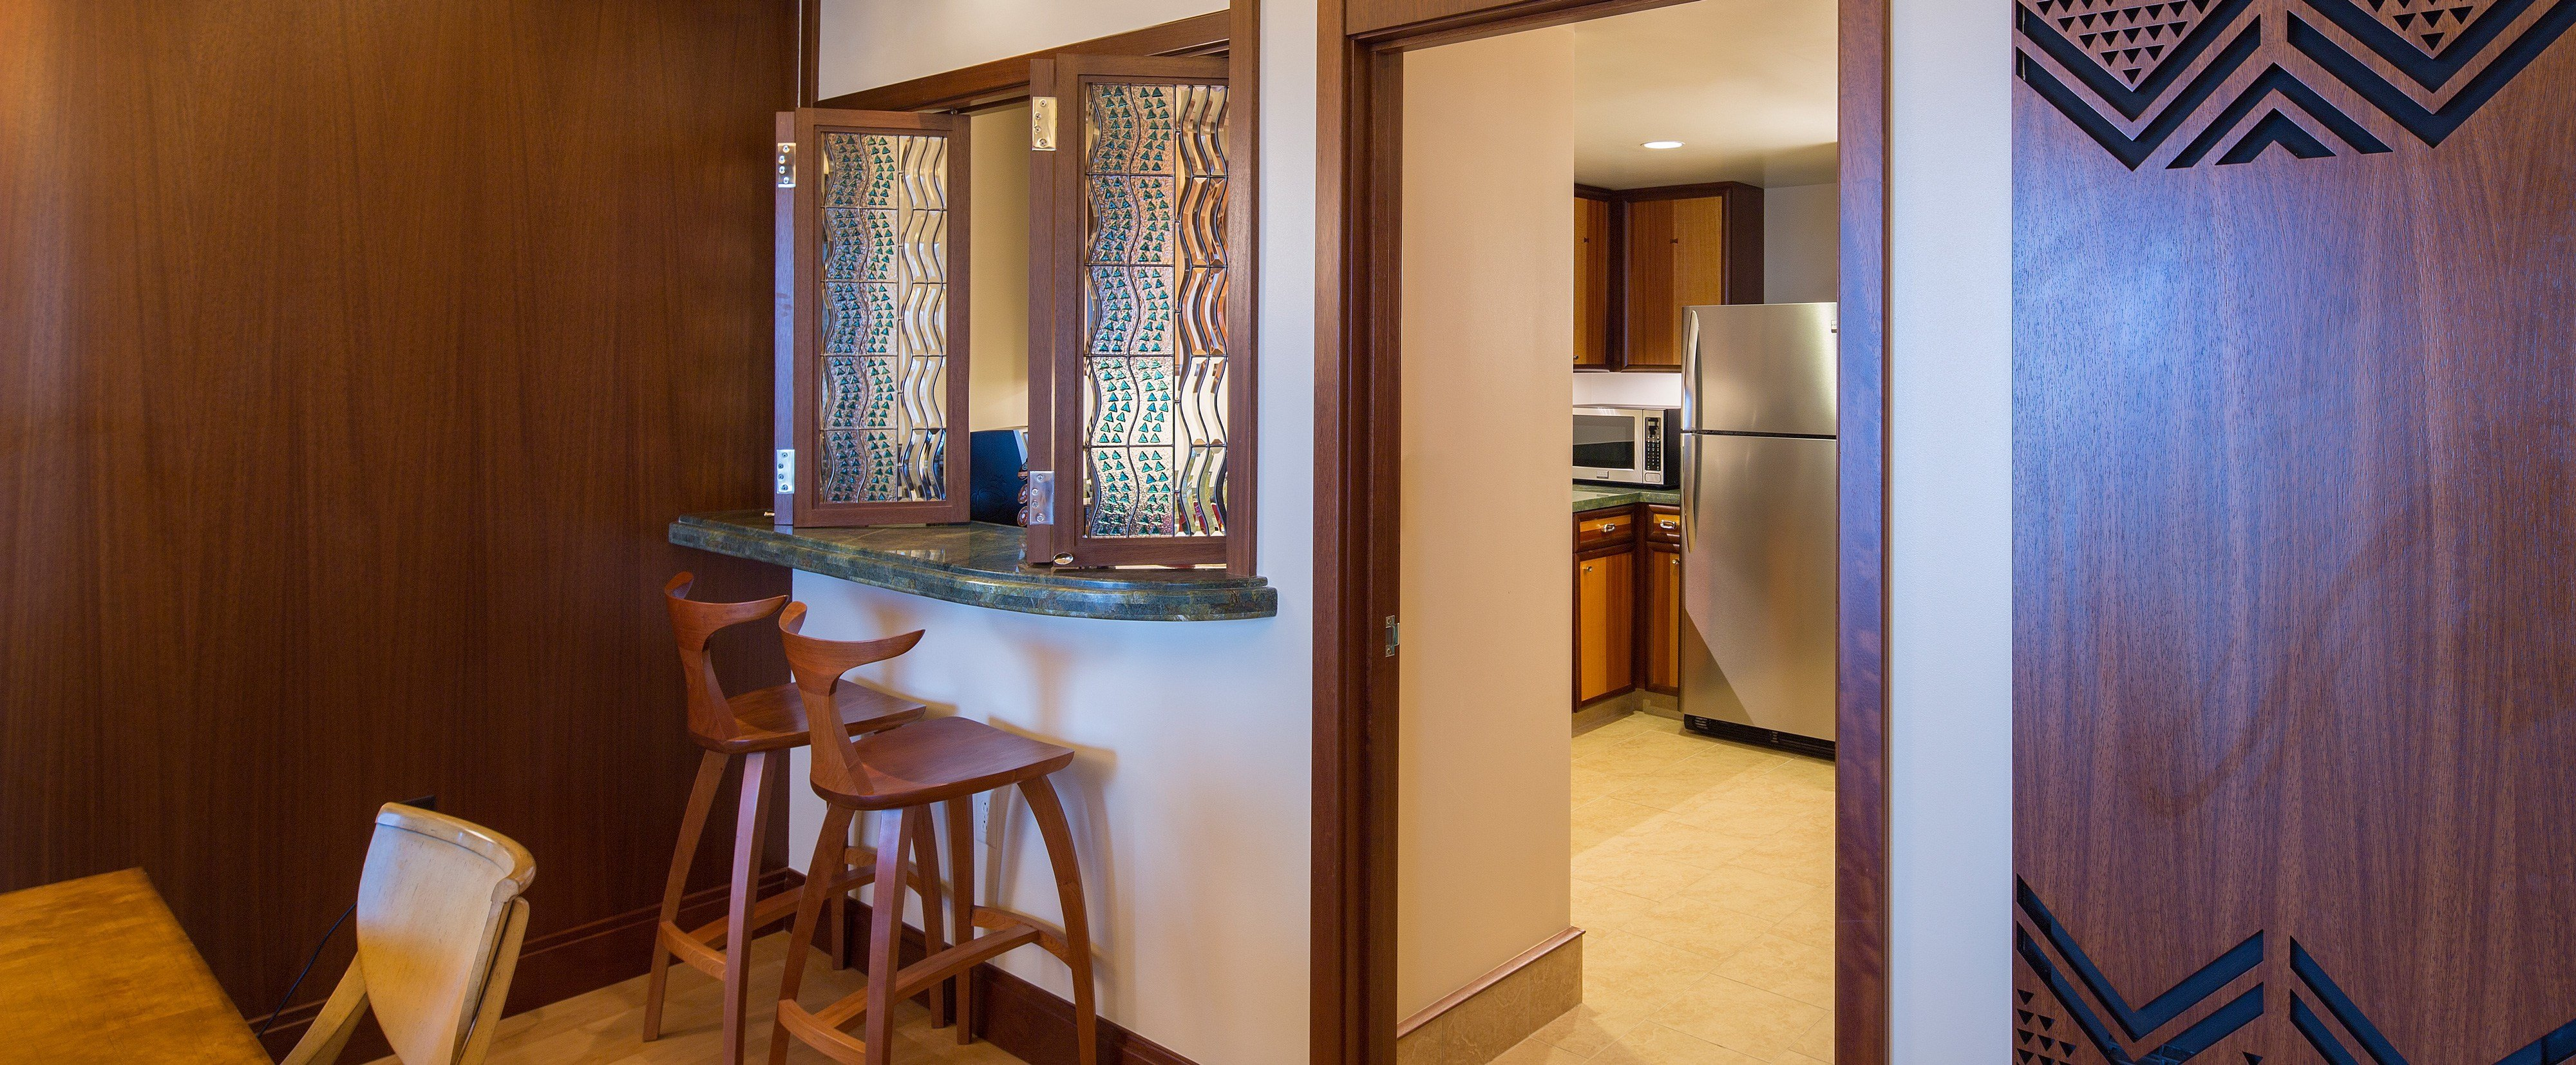 Best One Bedroom Deluxe Suite Aulani Hawaii Resort Spa With Pictures